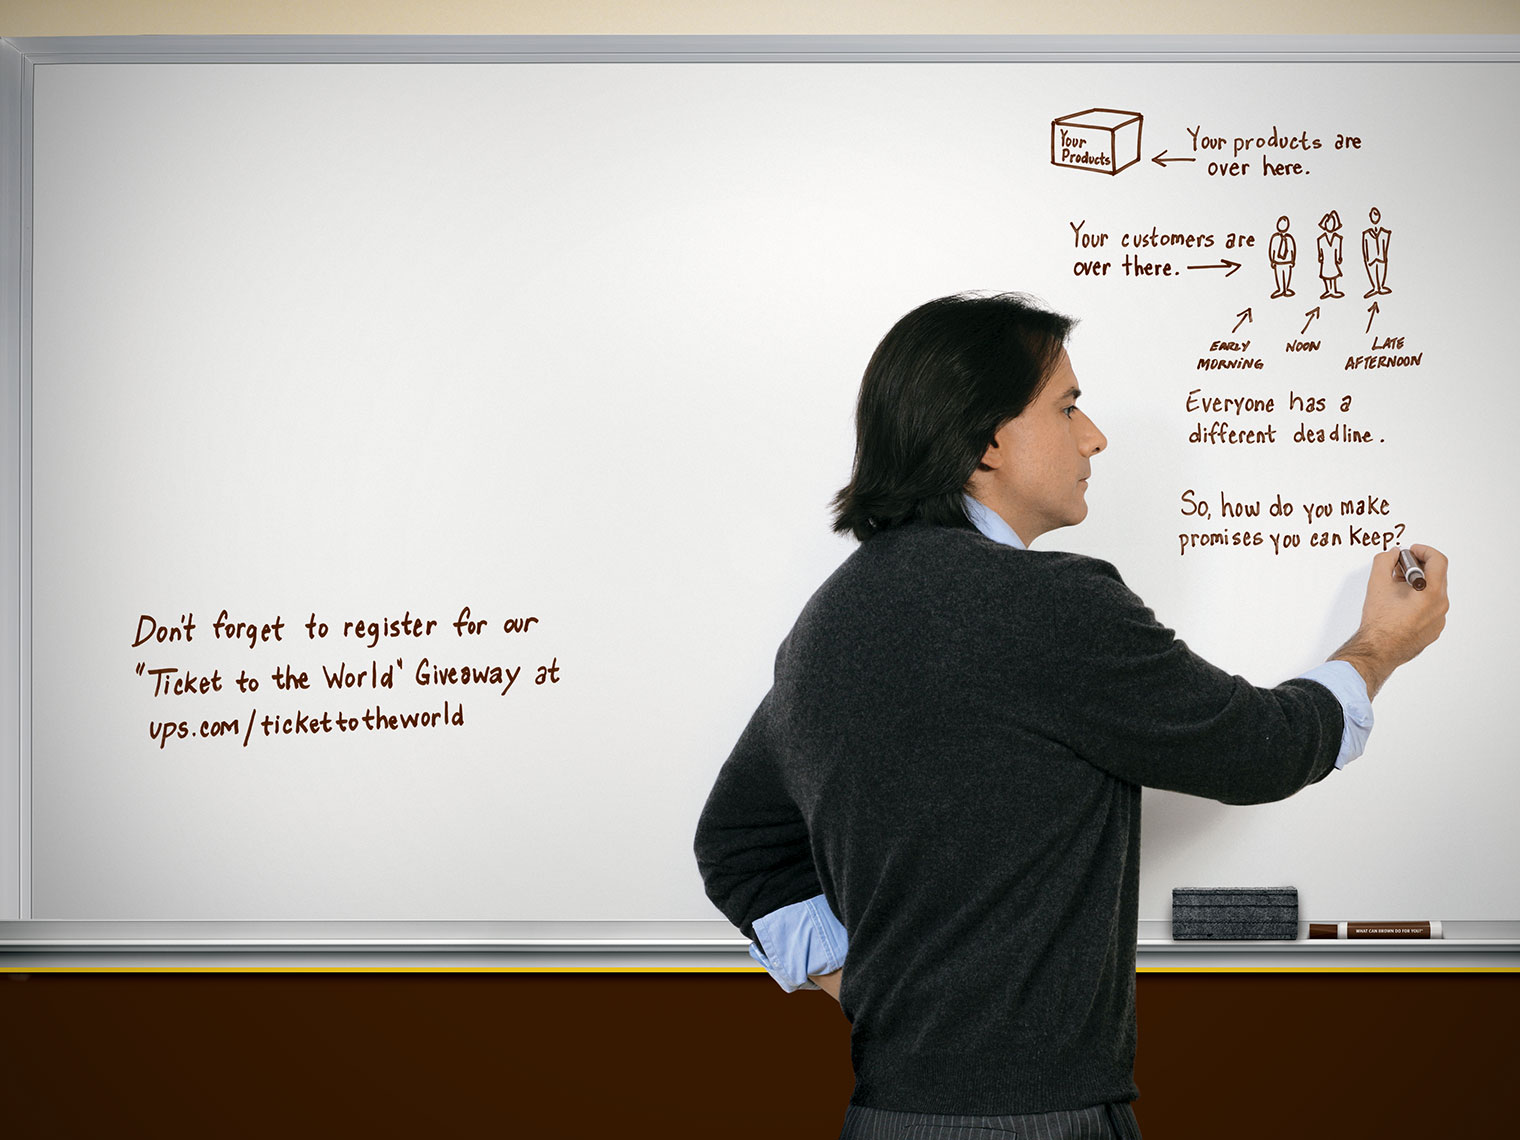 Commercial Photography, Photo Illustration and Retouching on The-Martin-Agency-UPS-White-Board